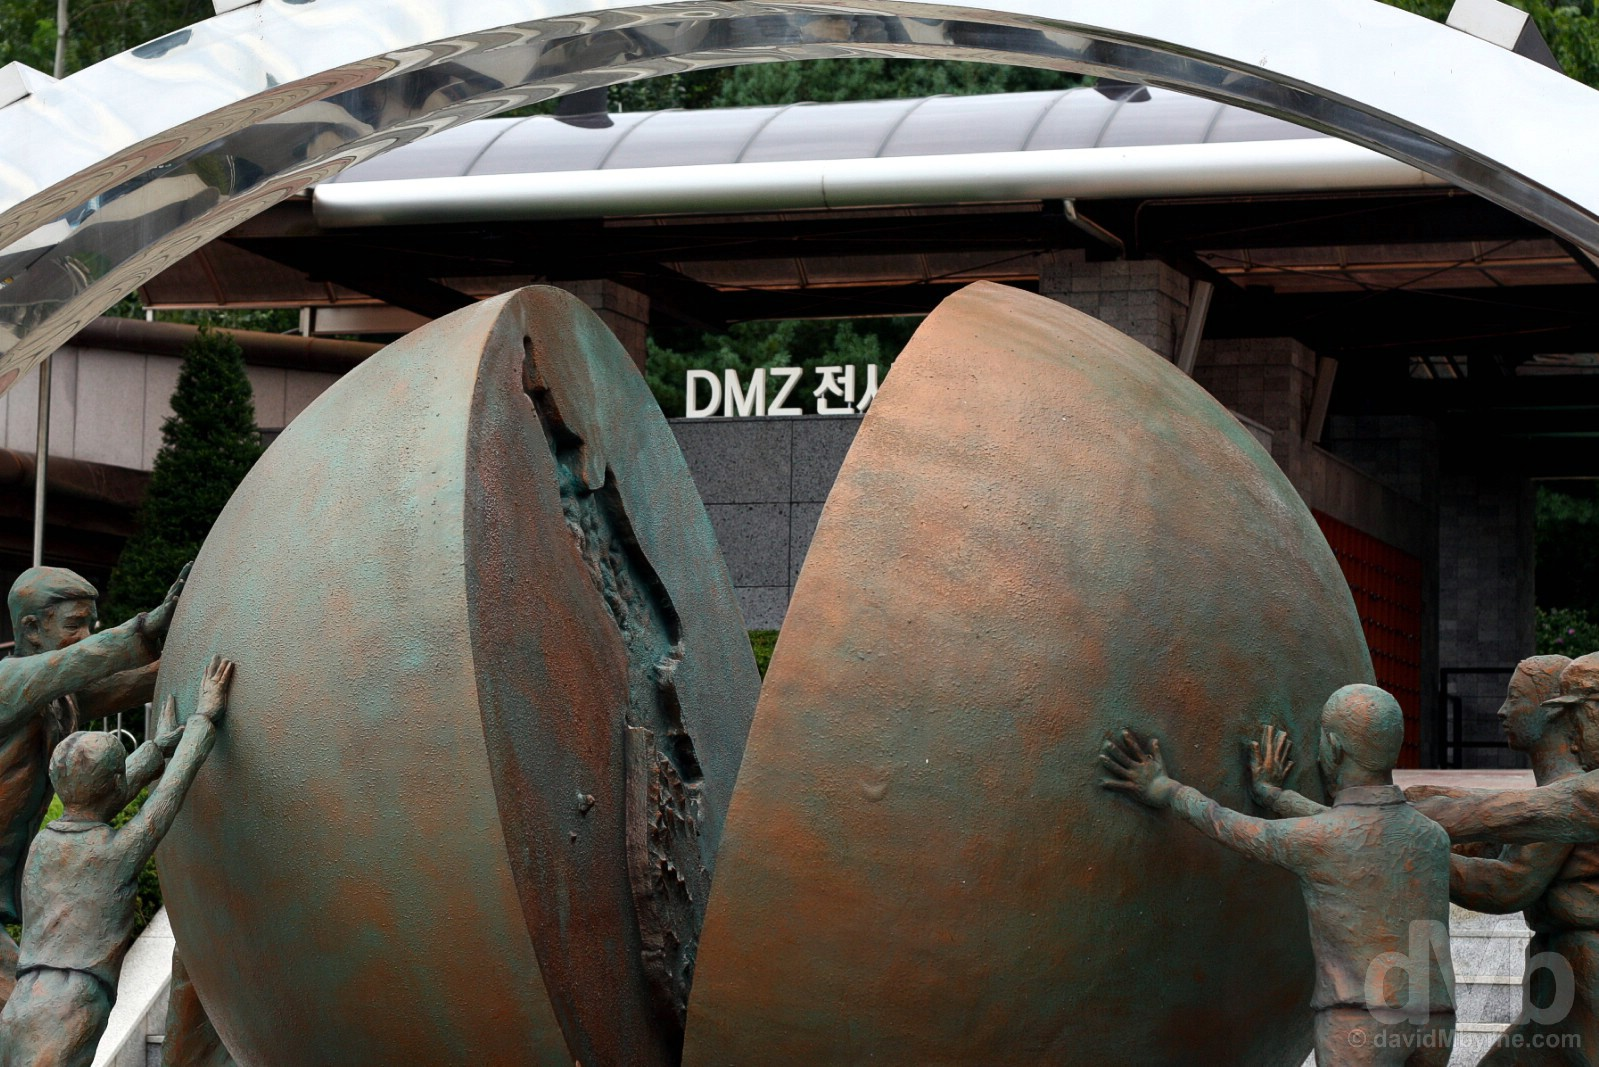 The 'This One Earth' statue at the 3rd Tunnel of the Demilitarized Zone (DMZ), South Korea. August 21, 2008.